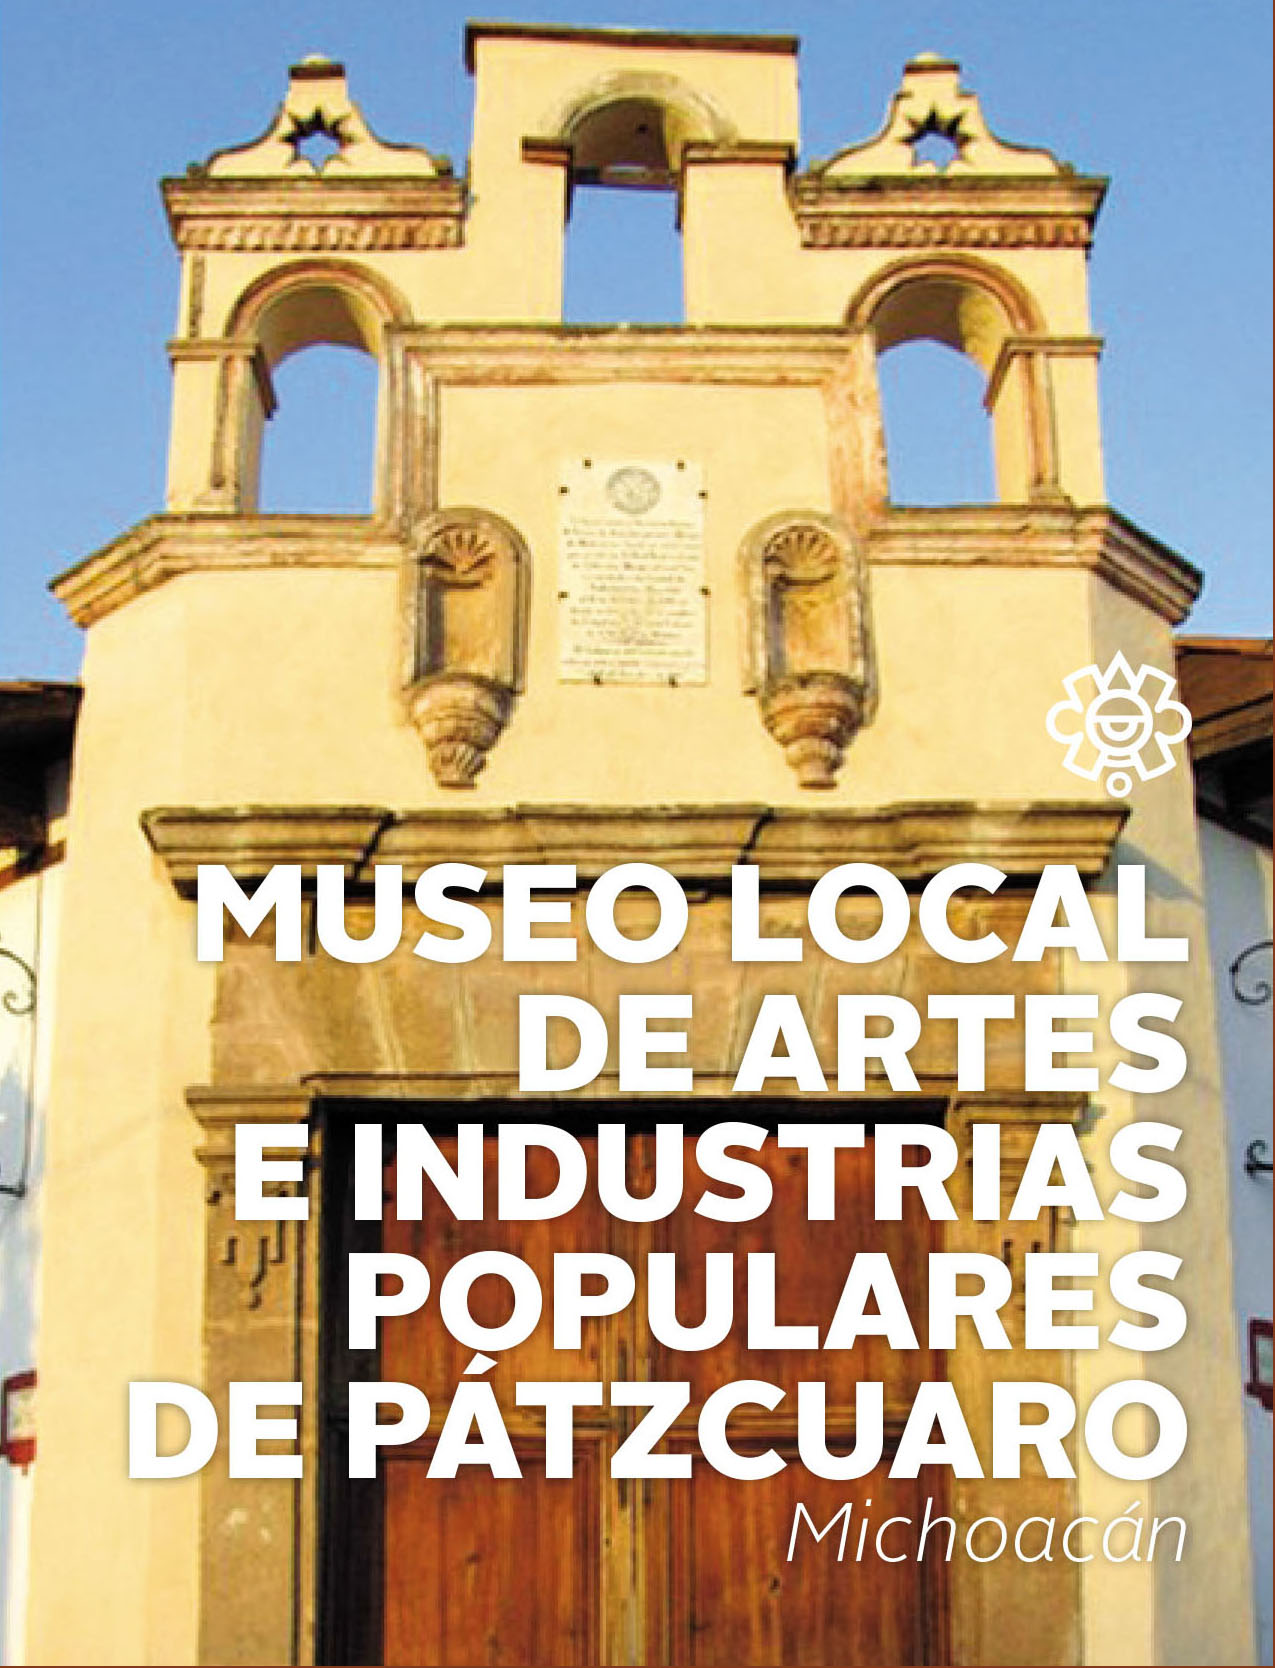 Museo local de Artes e Industrias populares